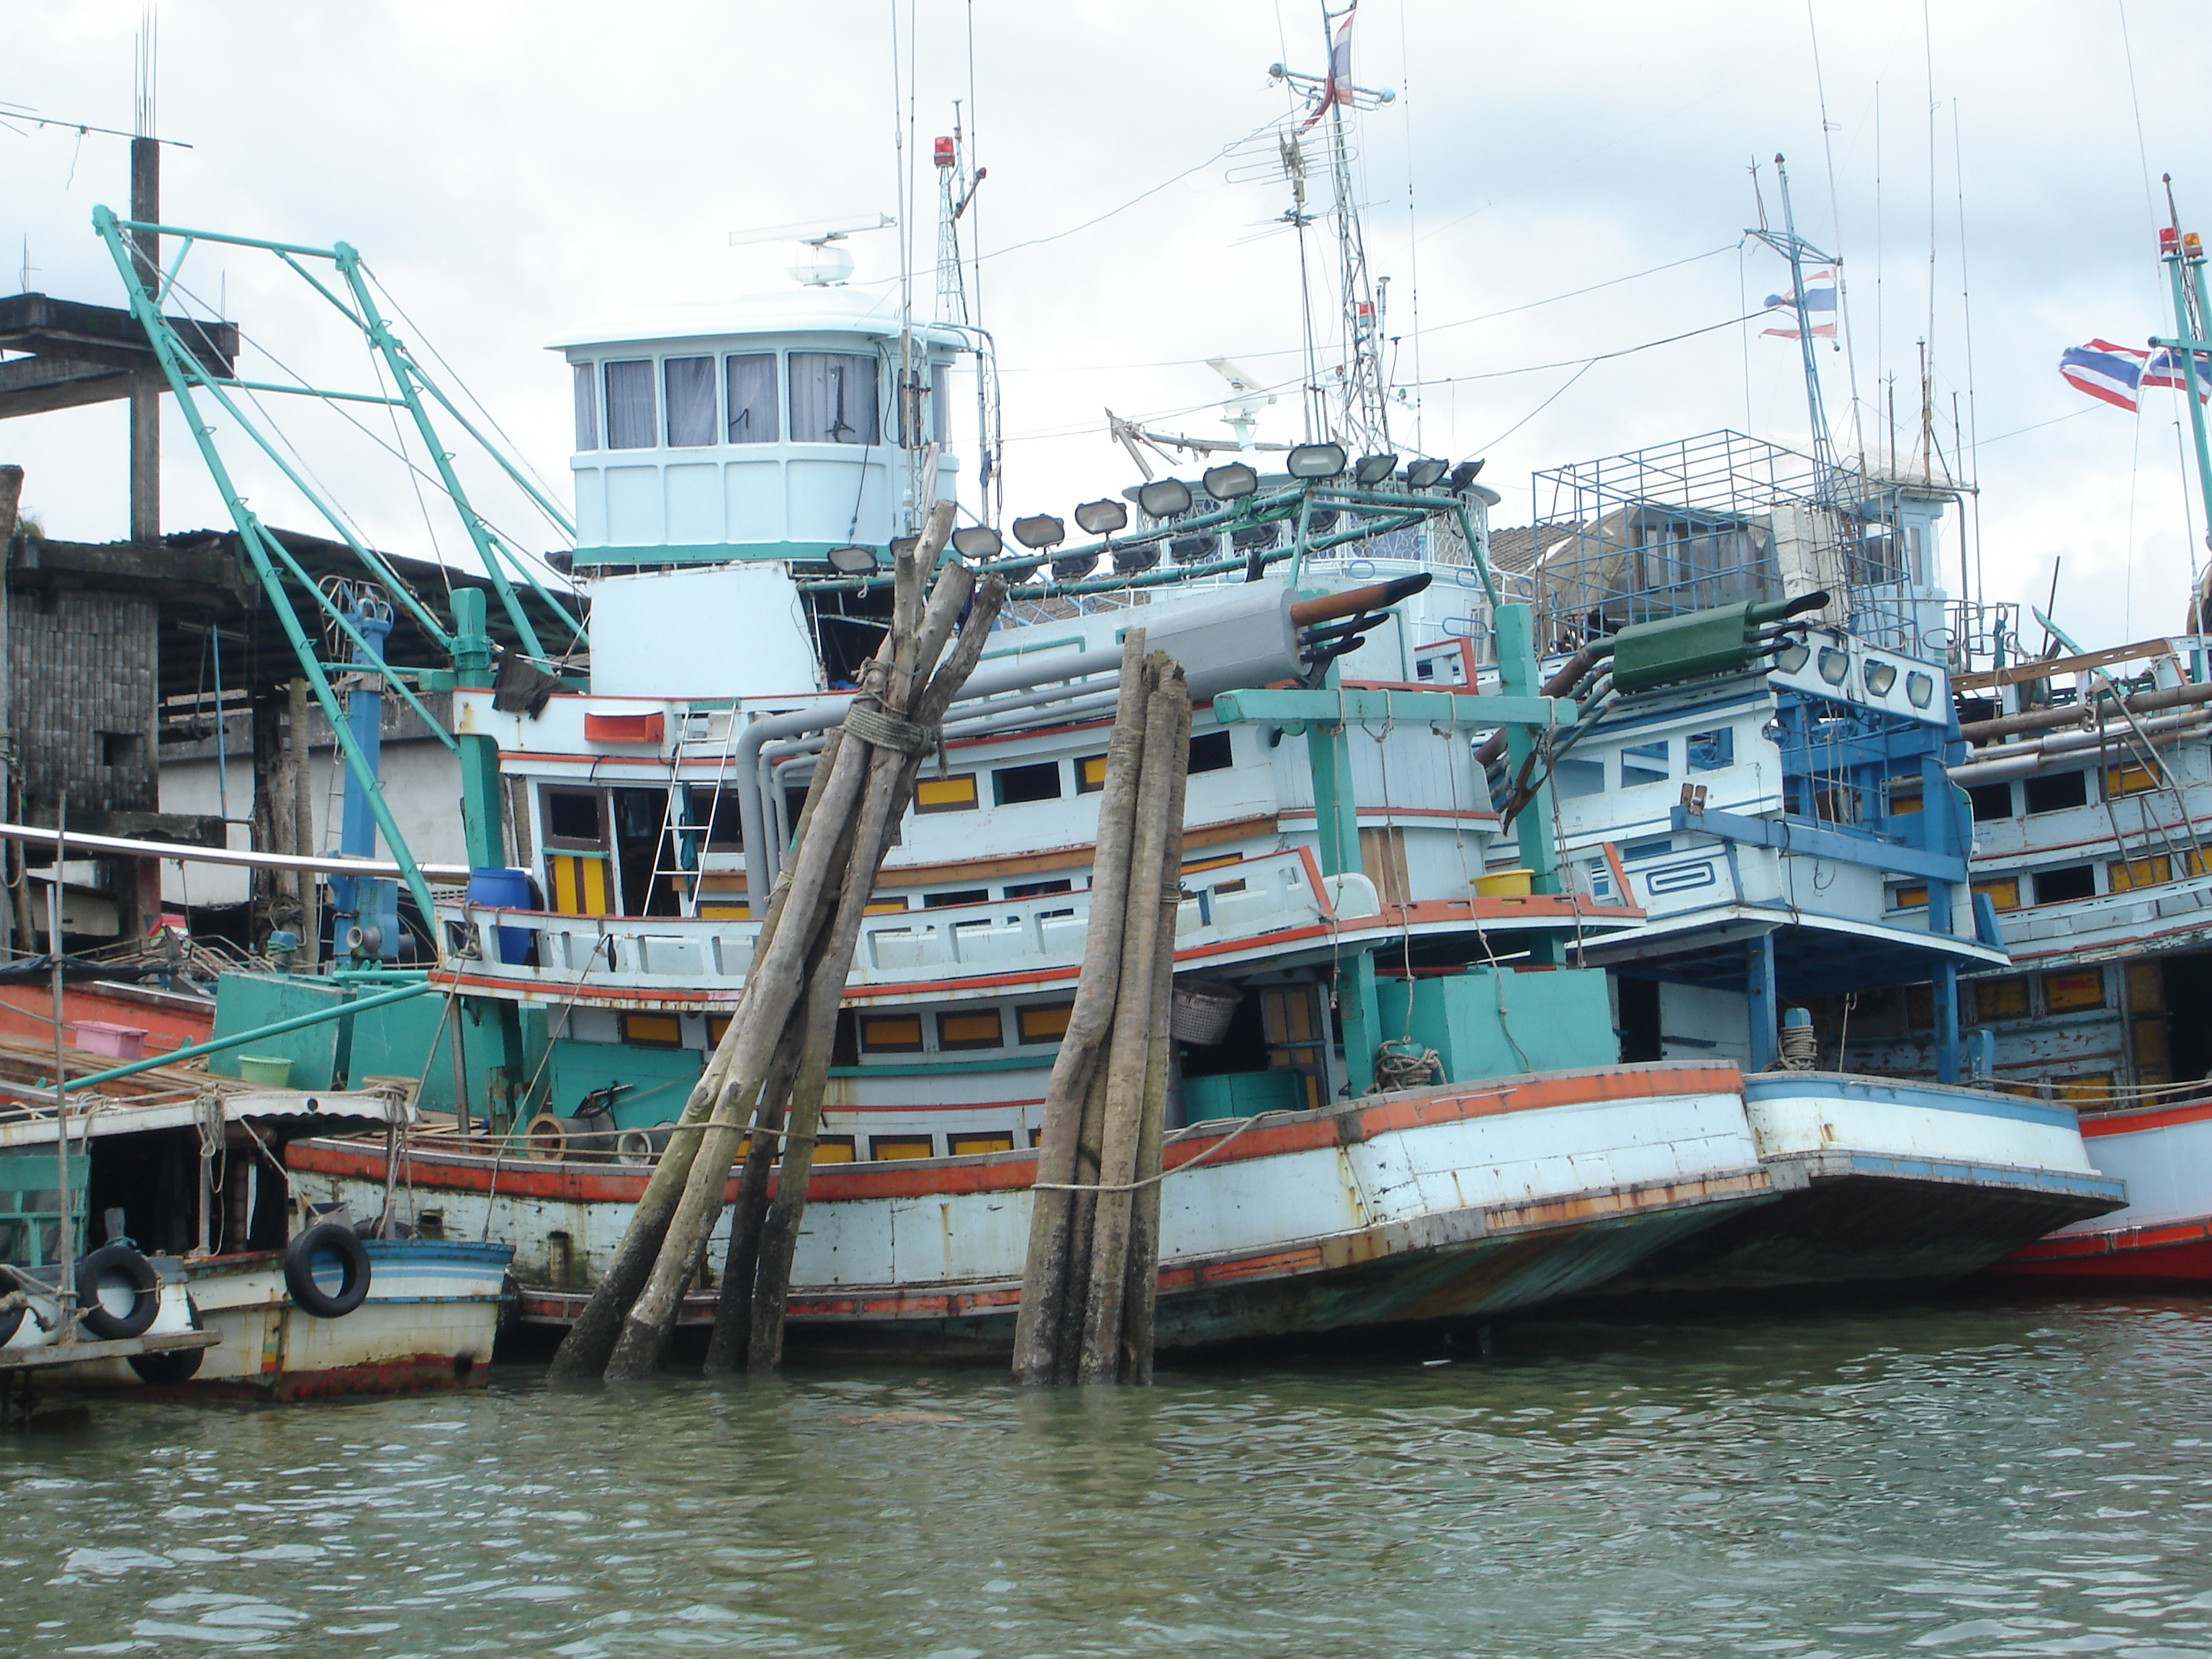 Thai fishing boats moored at Ranong, Thailand. Photo taken by Mark Joseph Jochim on July 4, 2006.